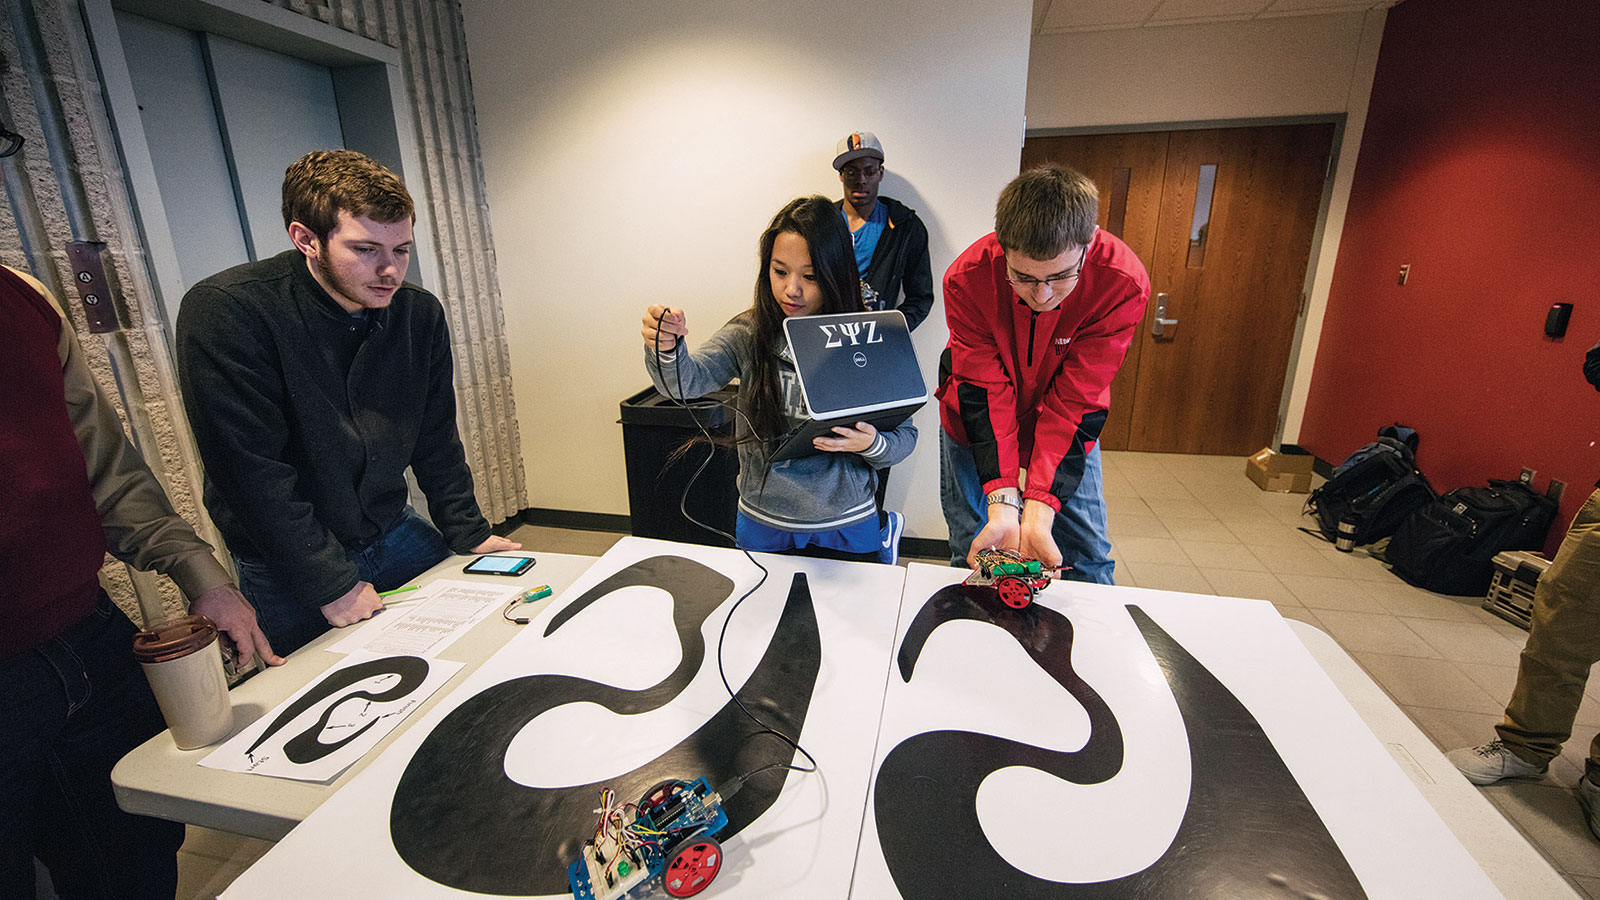 Students in computer science, computer engineering and software engineering build and program robotics for hands-on learning.